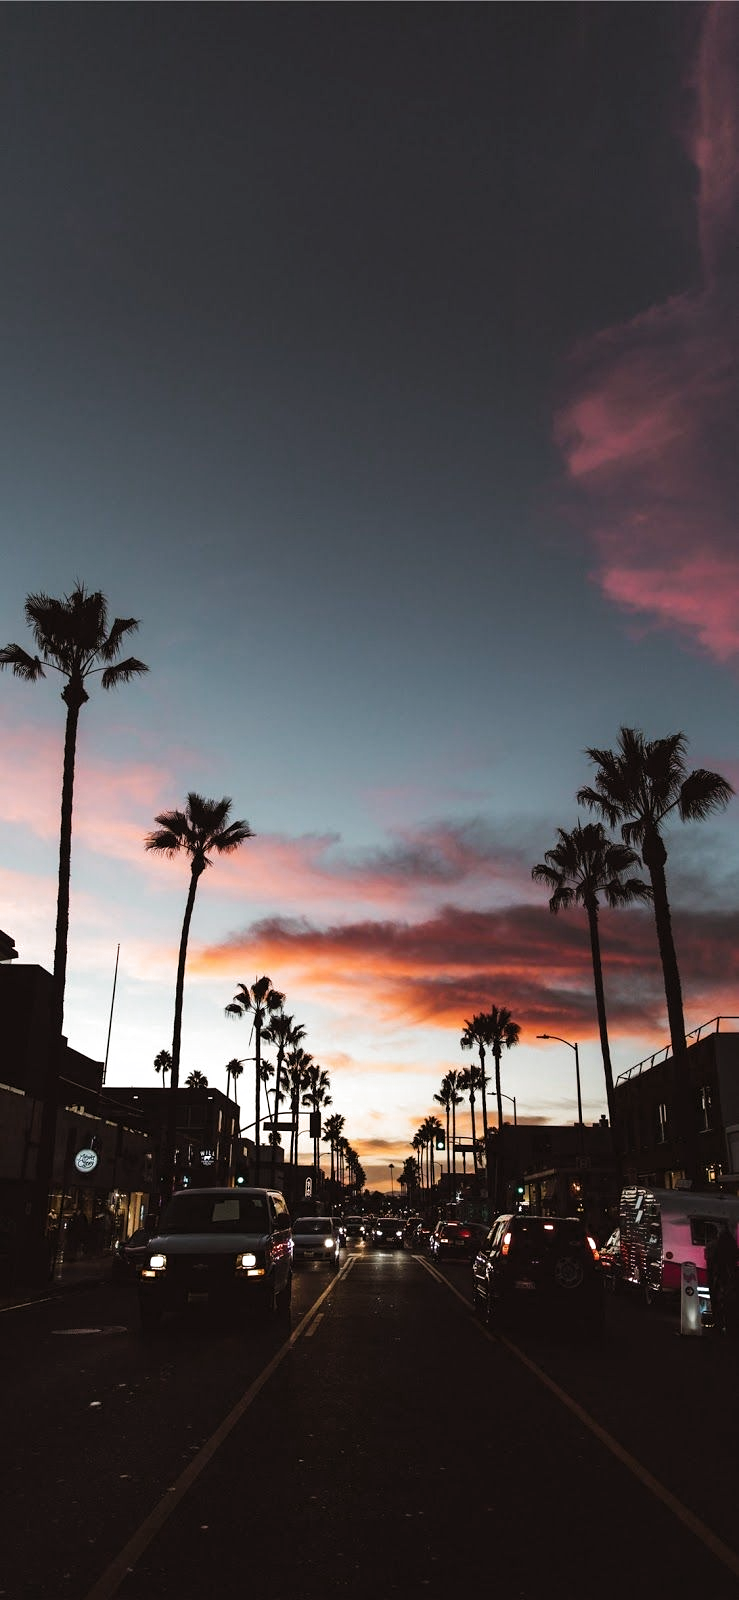 Pin By Galaxy Wallpaper On Inspiracoes In 2020 Iphone Wallpaper Los Angeles California Wallpaper Sunset Wallpaper